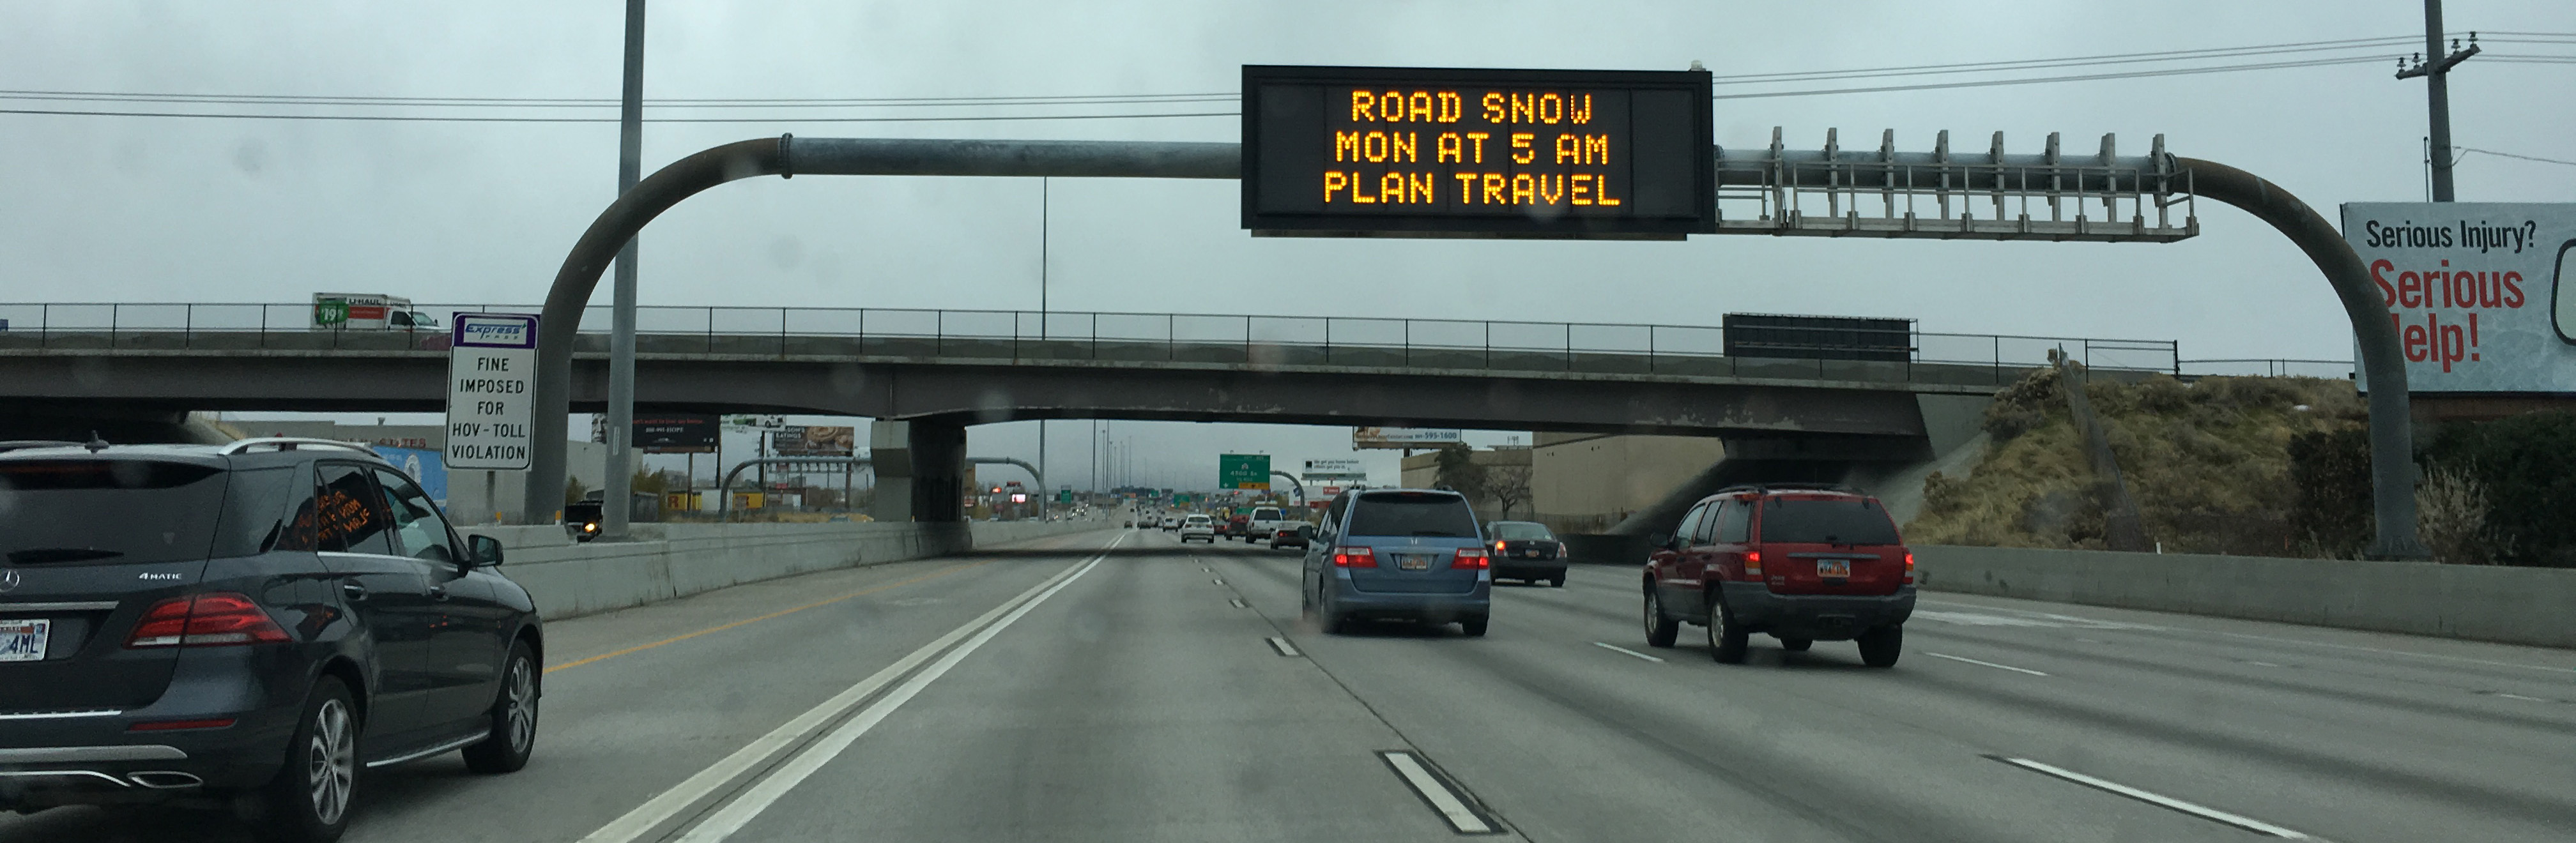 """UDOT VMS sign showing """"Road snow Mon at 5 am plan travel"""""""